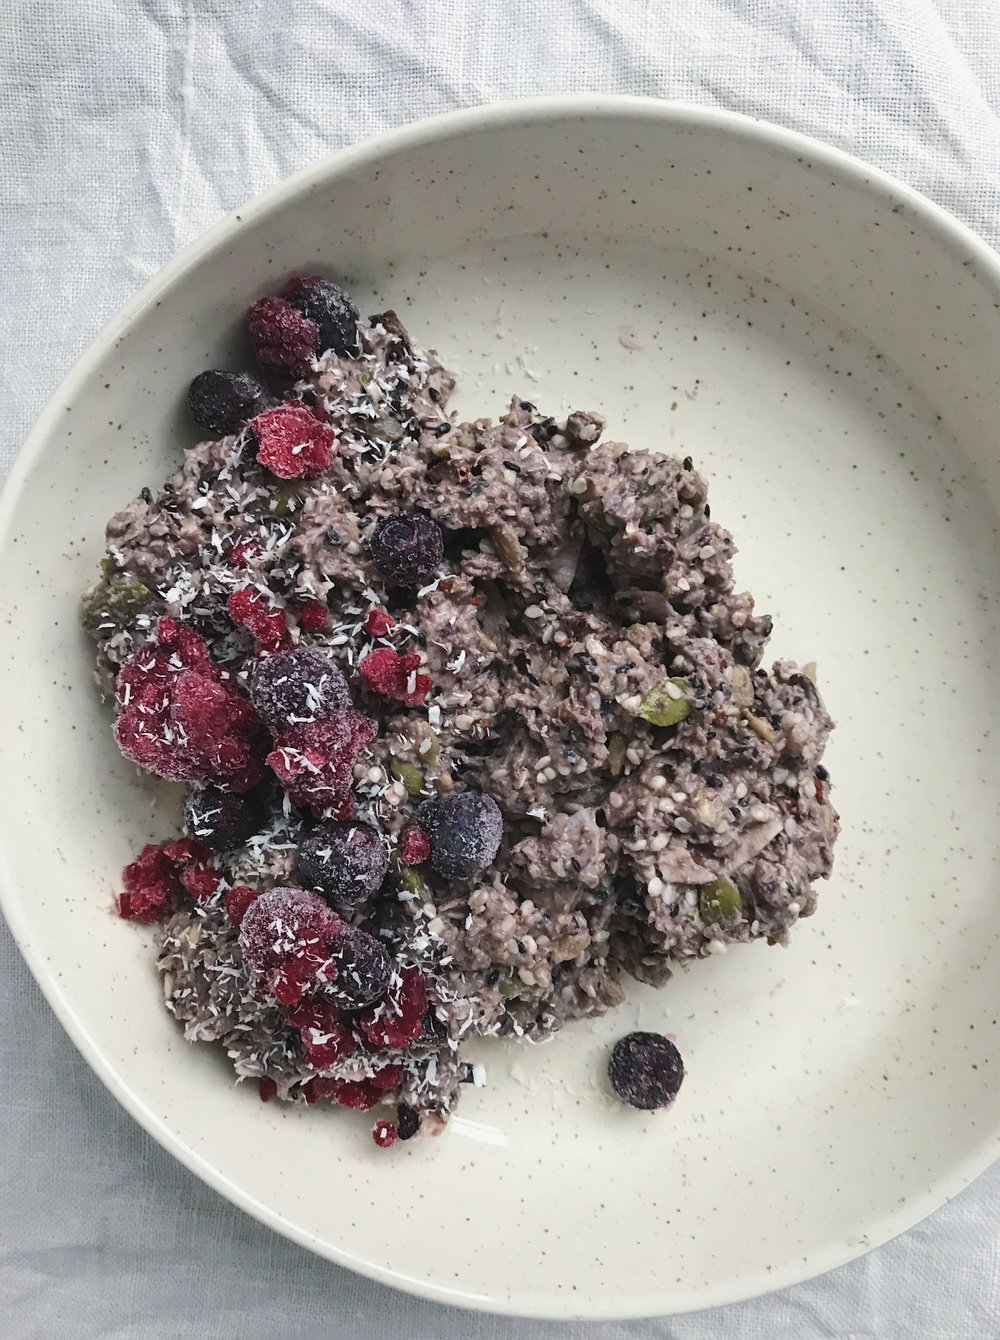 Blueberry Lavva mixed with my  Super Seed Muesli  and cinnamon.